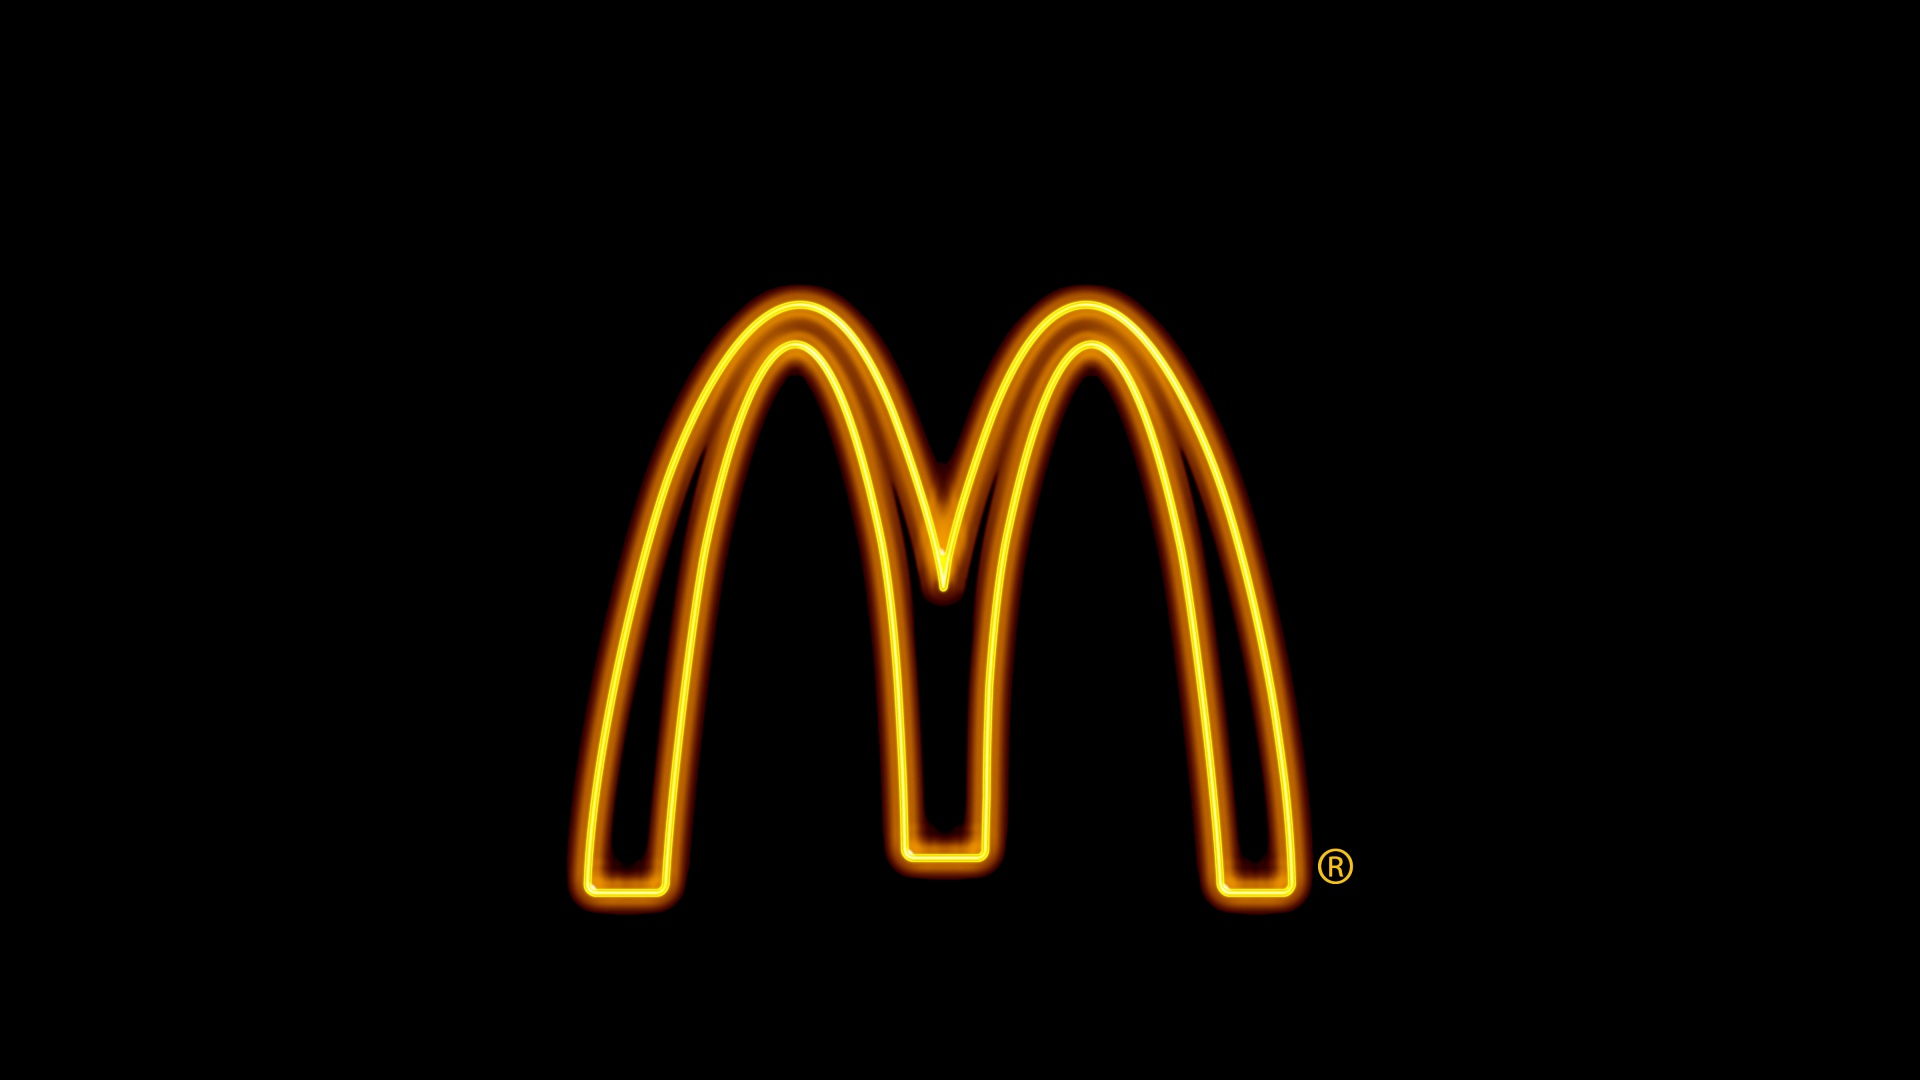 Logo Fast Food Chain News Pictures And Videos Learn All About Mcdonalds From Wallpapers4uorg Your Wallpaper Source